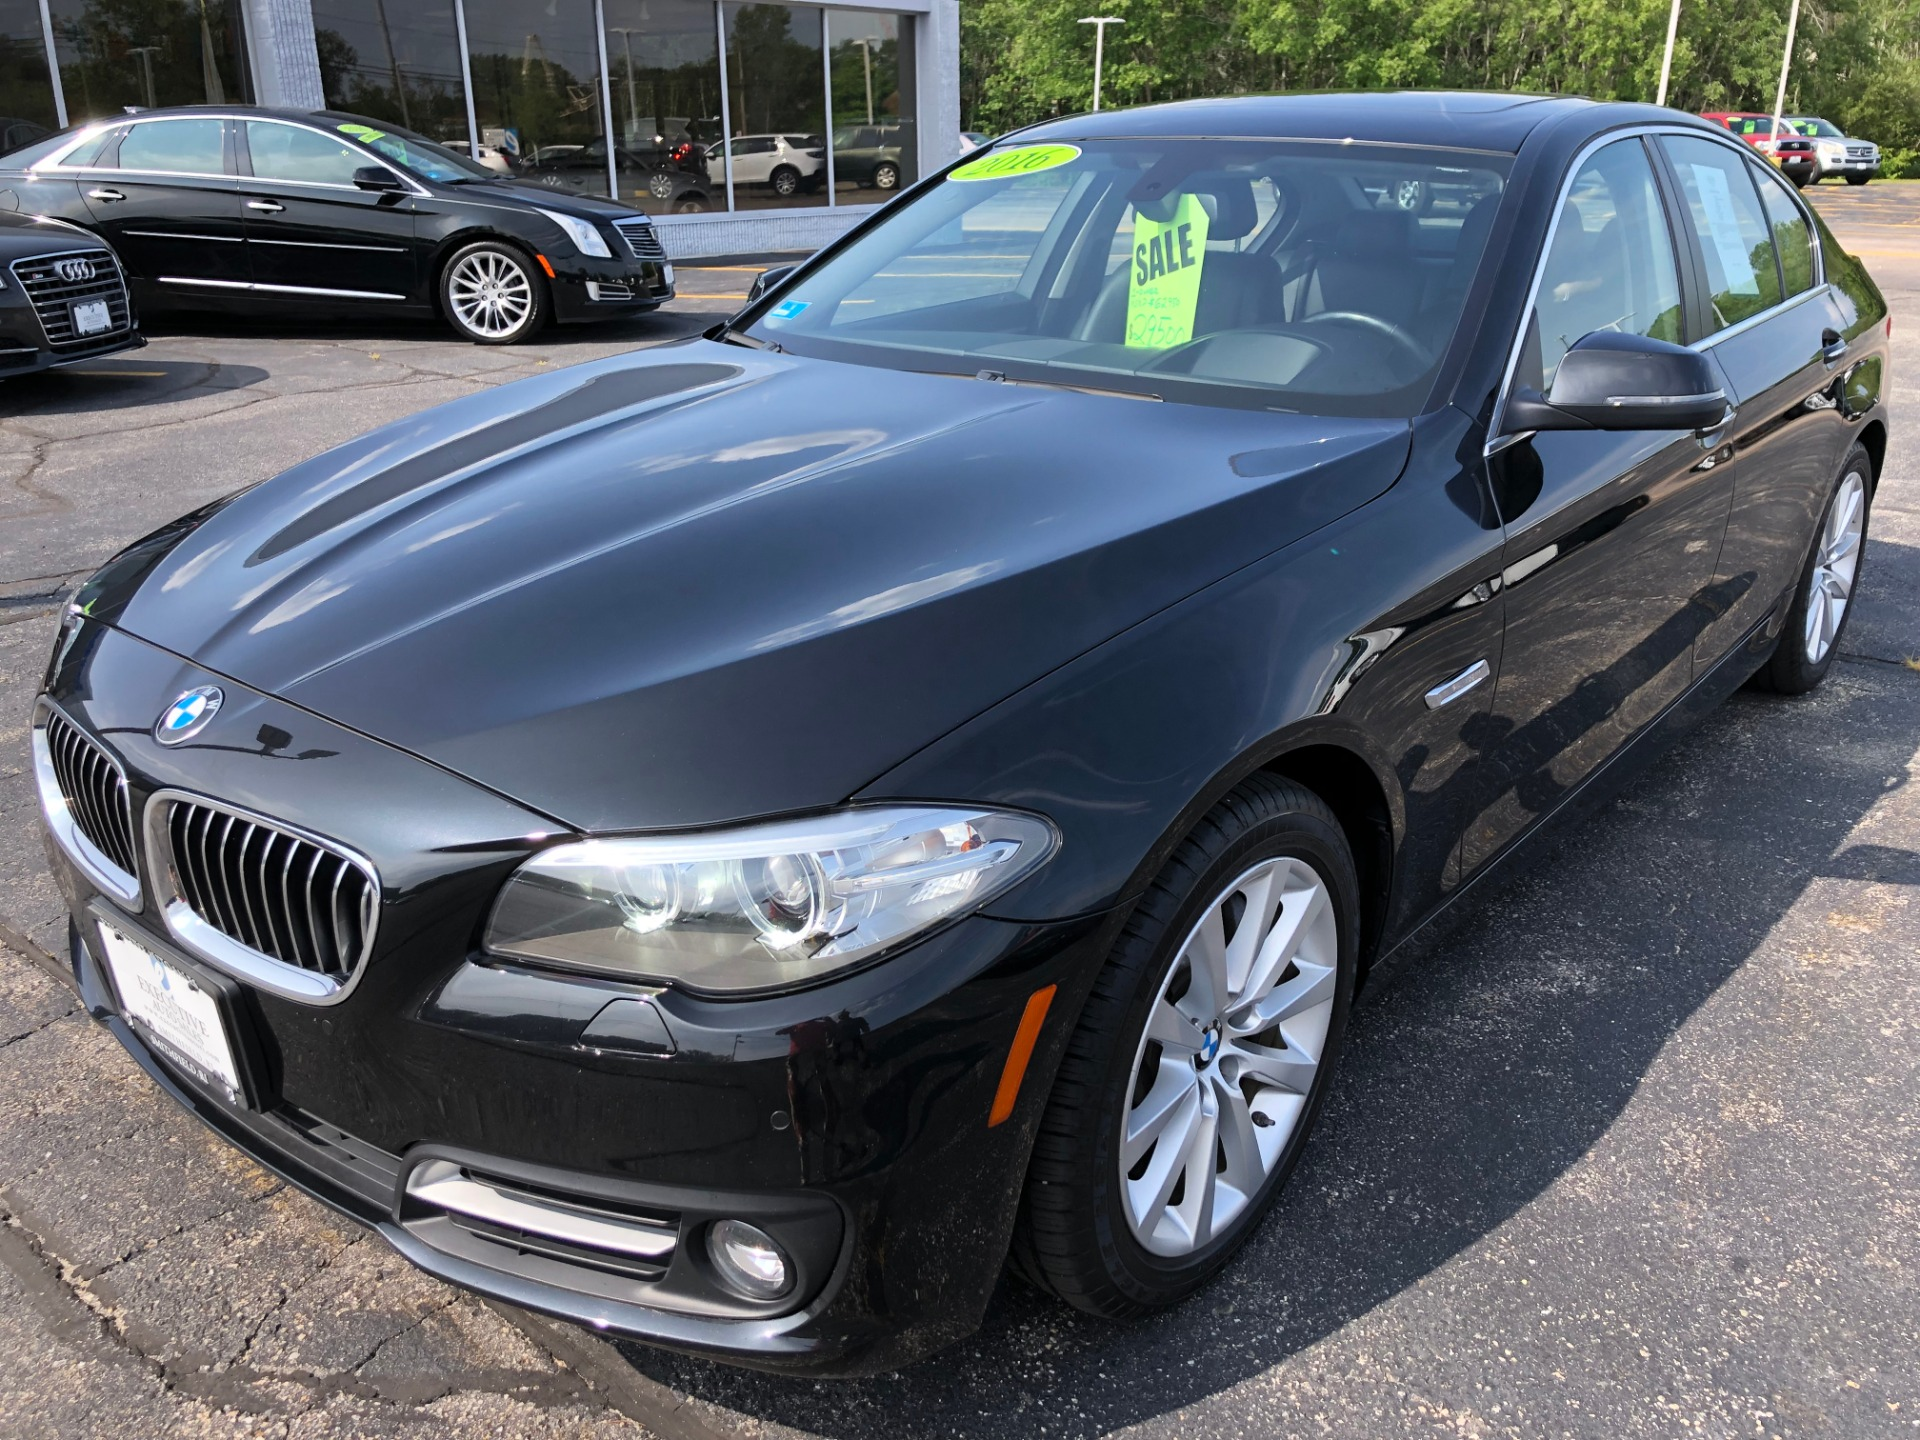 2016 Bmw 535xi Xi Stock 1839 For Sale Near Smithfield